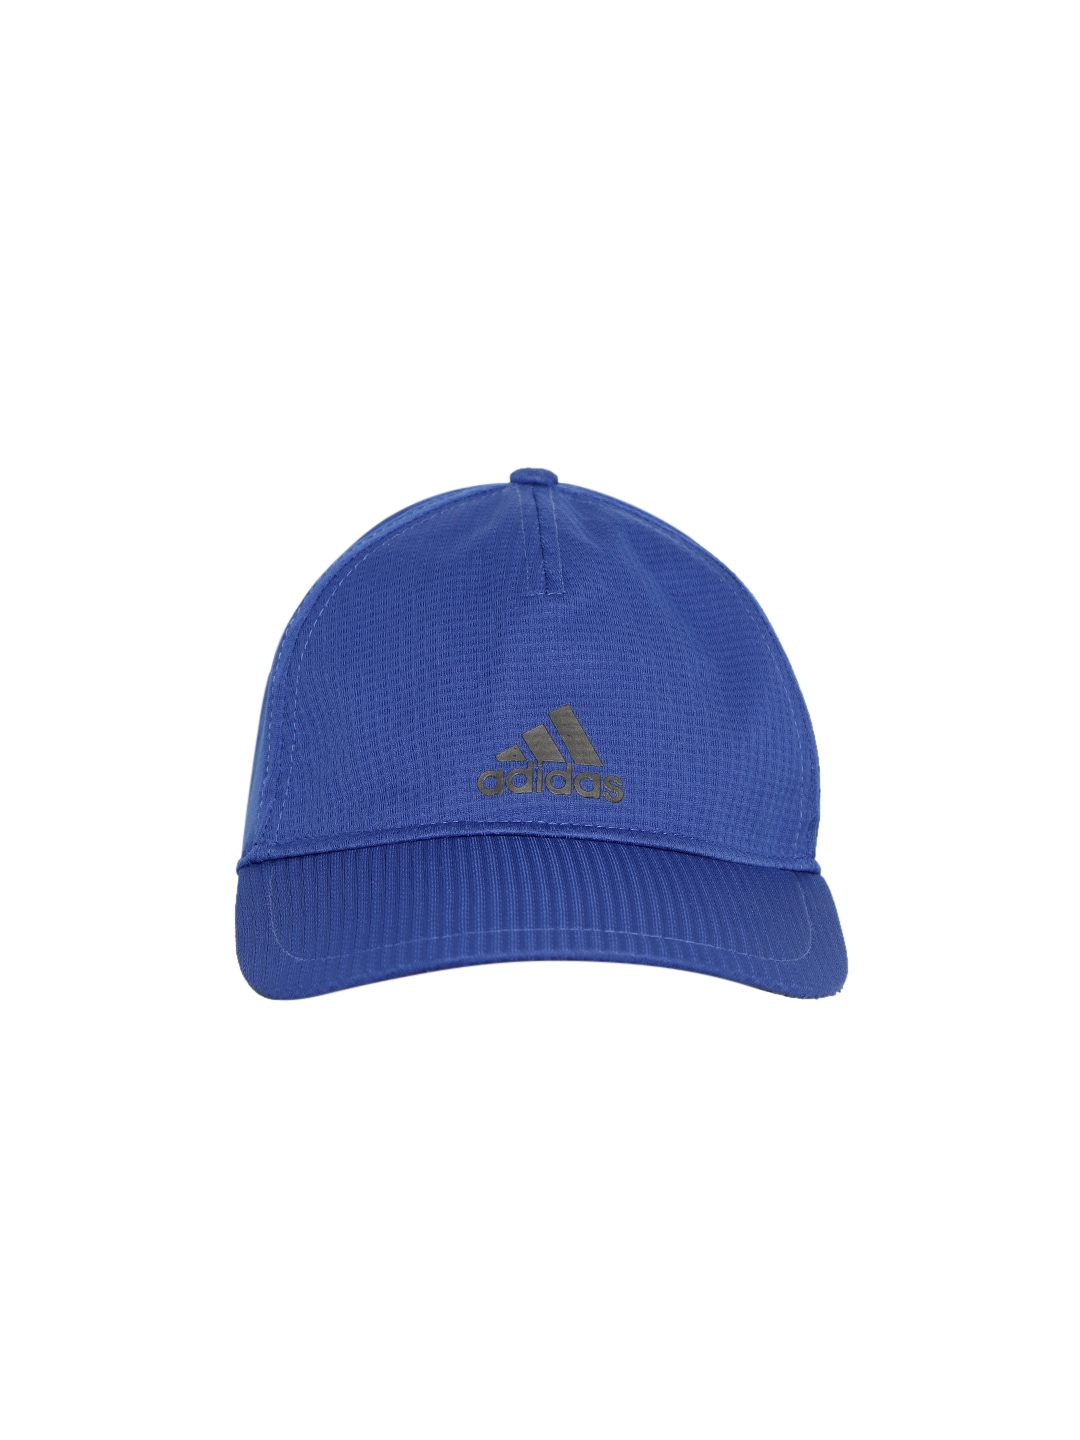 092dbab7 Adidas Caps Watches Sports Shoes - Buy Adidas Caps Watches Sports Shoes  online in India